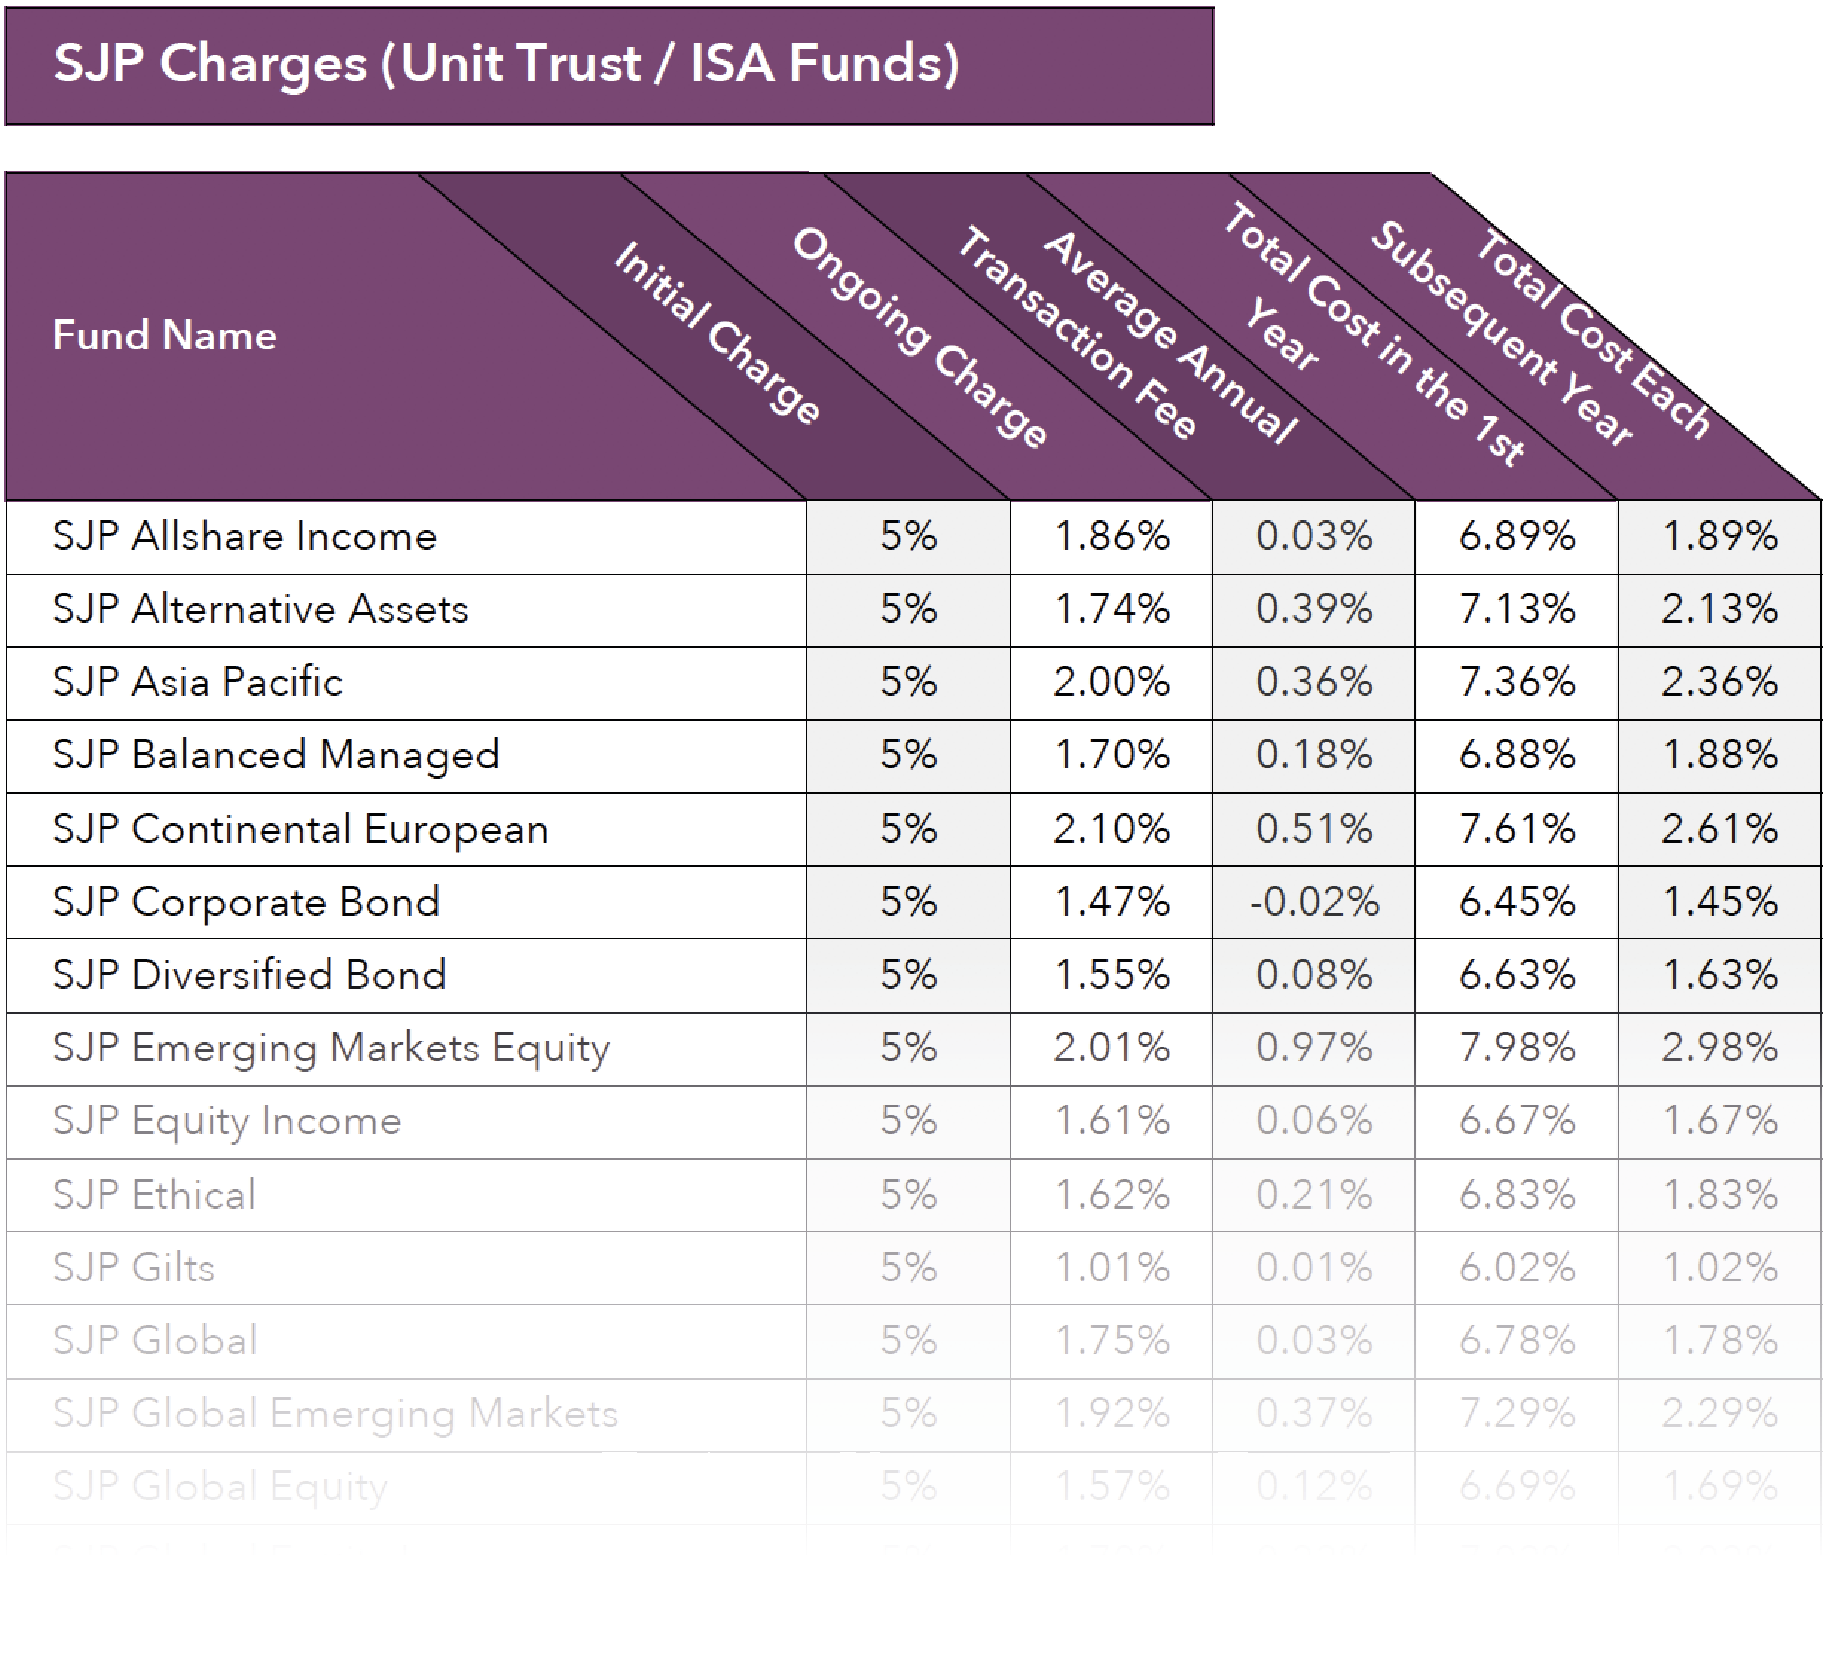 St James's Place fund charges